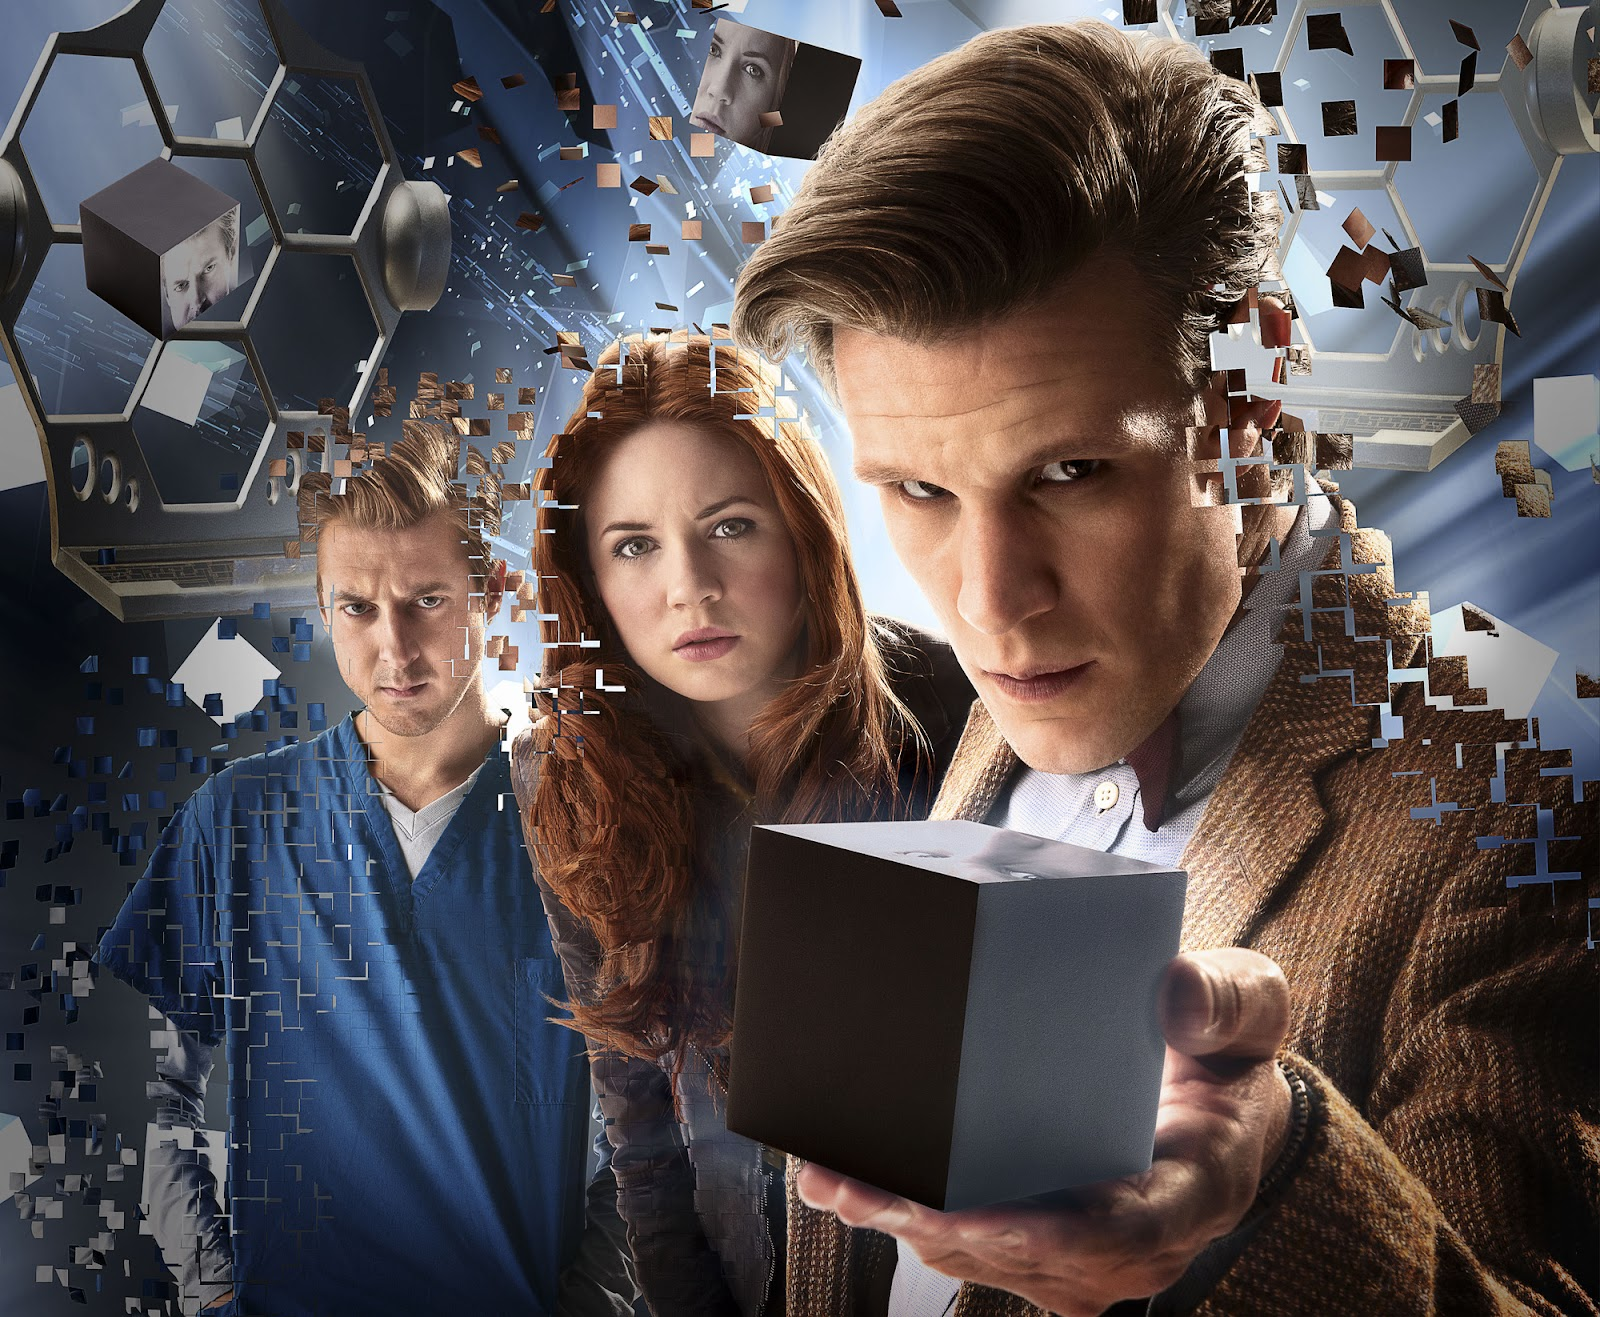 Doctor Who series 7: The Power of Three